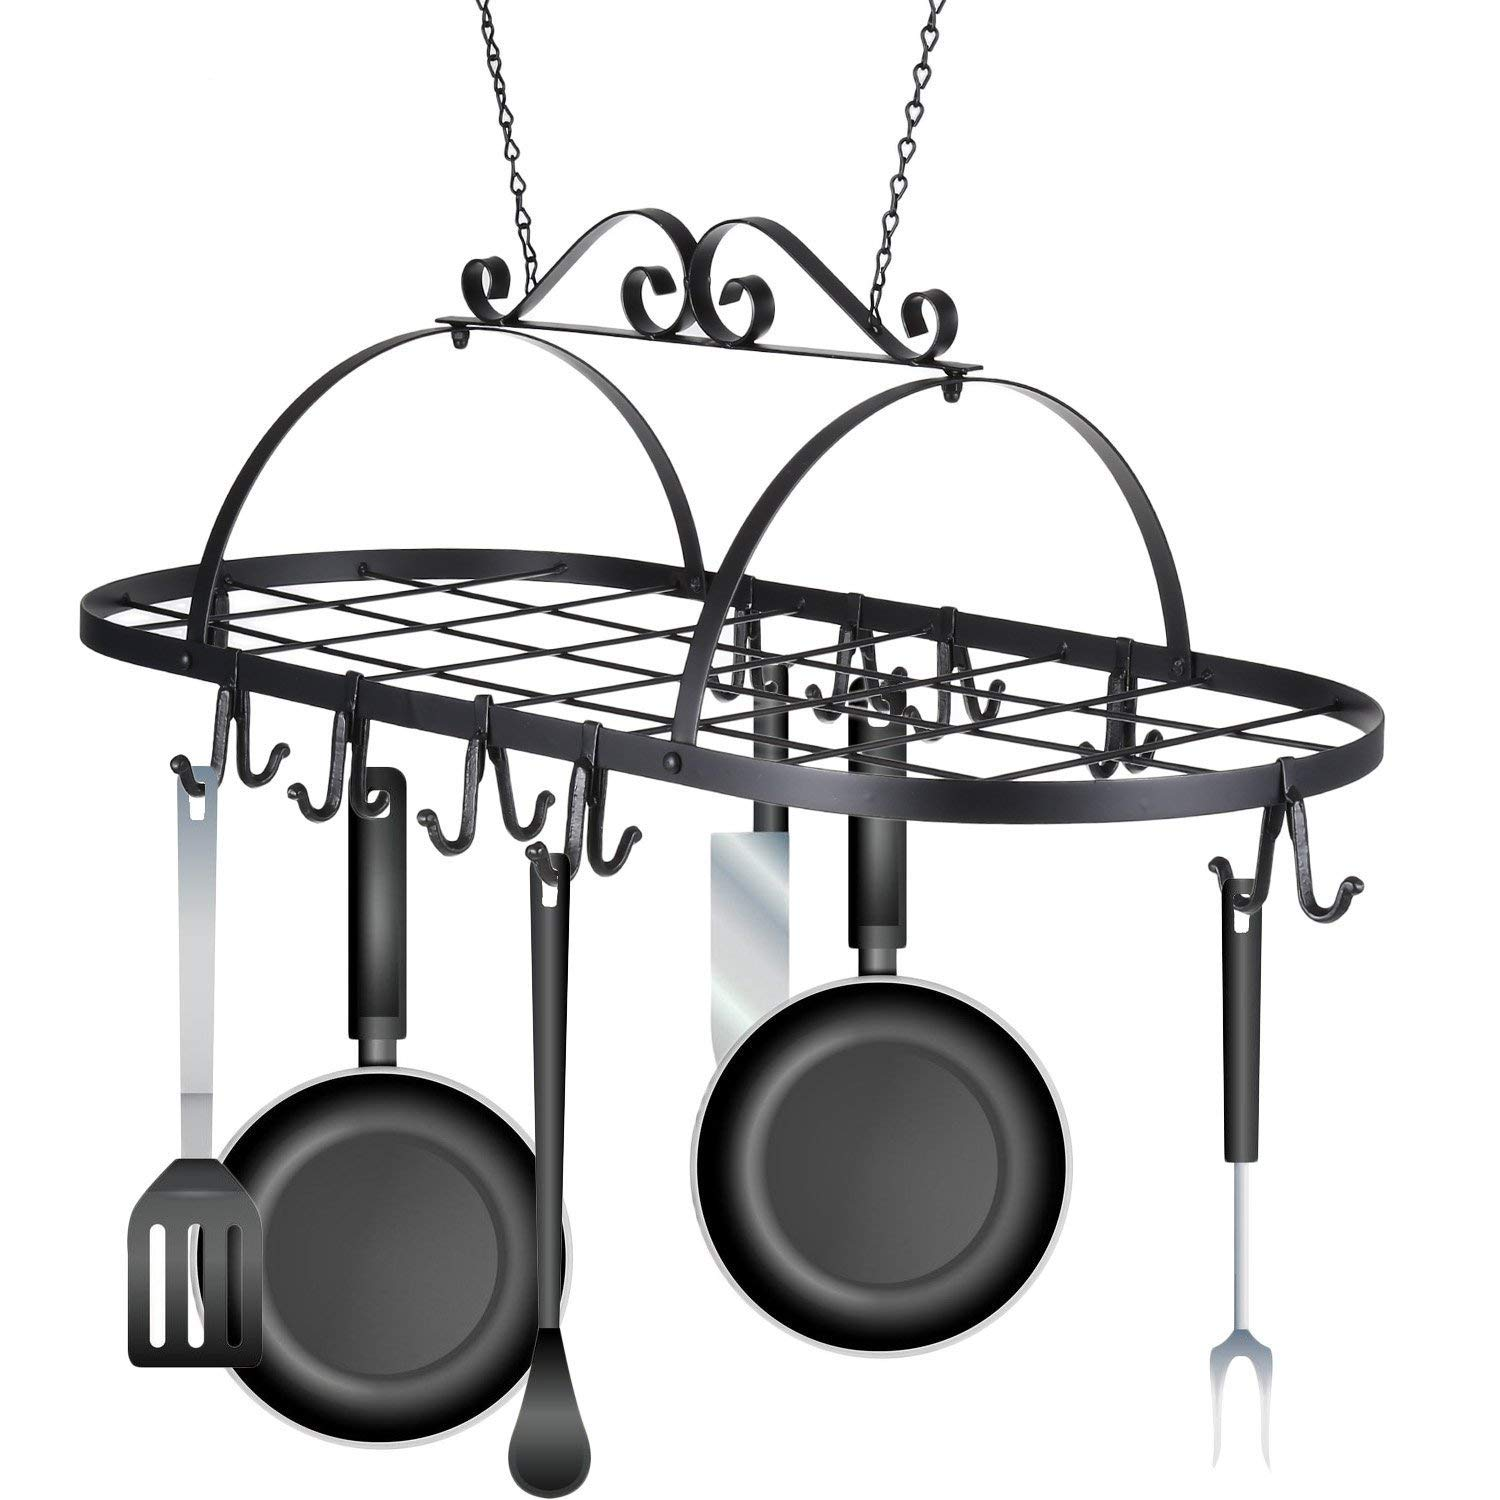 Pesters Iron Hanging Pot Rack, Kitchen Holder Hanger Pots and Pans Rack Organizer to Storage Utility Cookware (US STOCK)